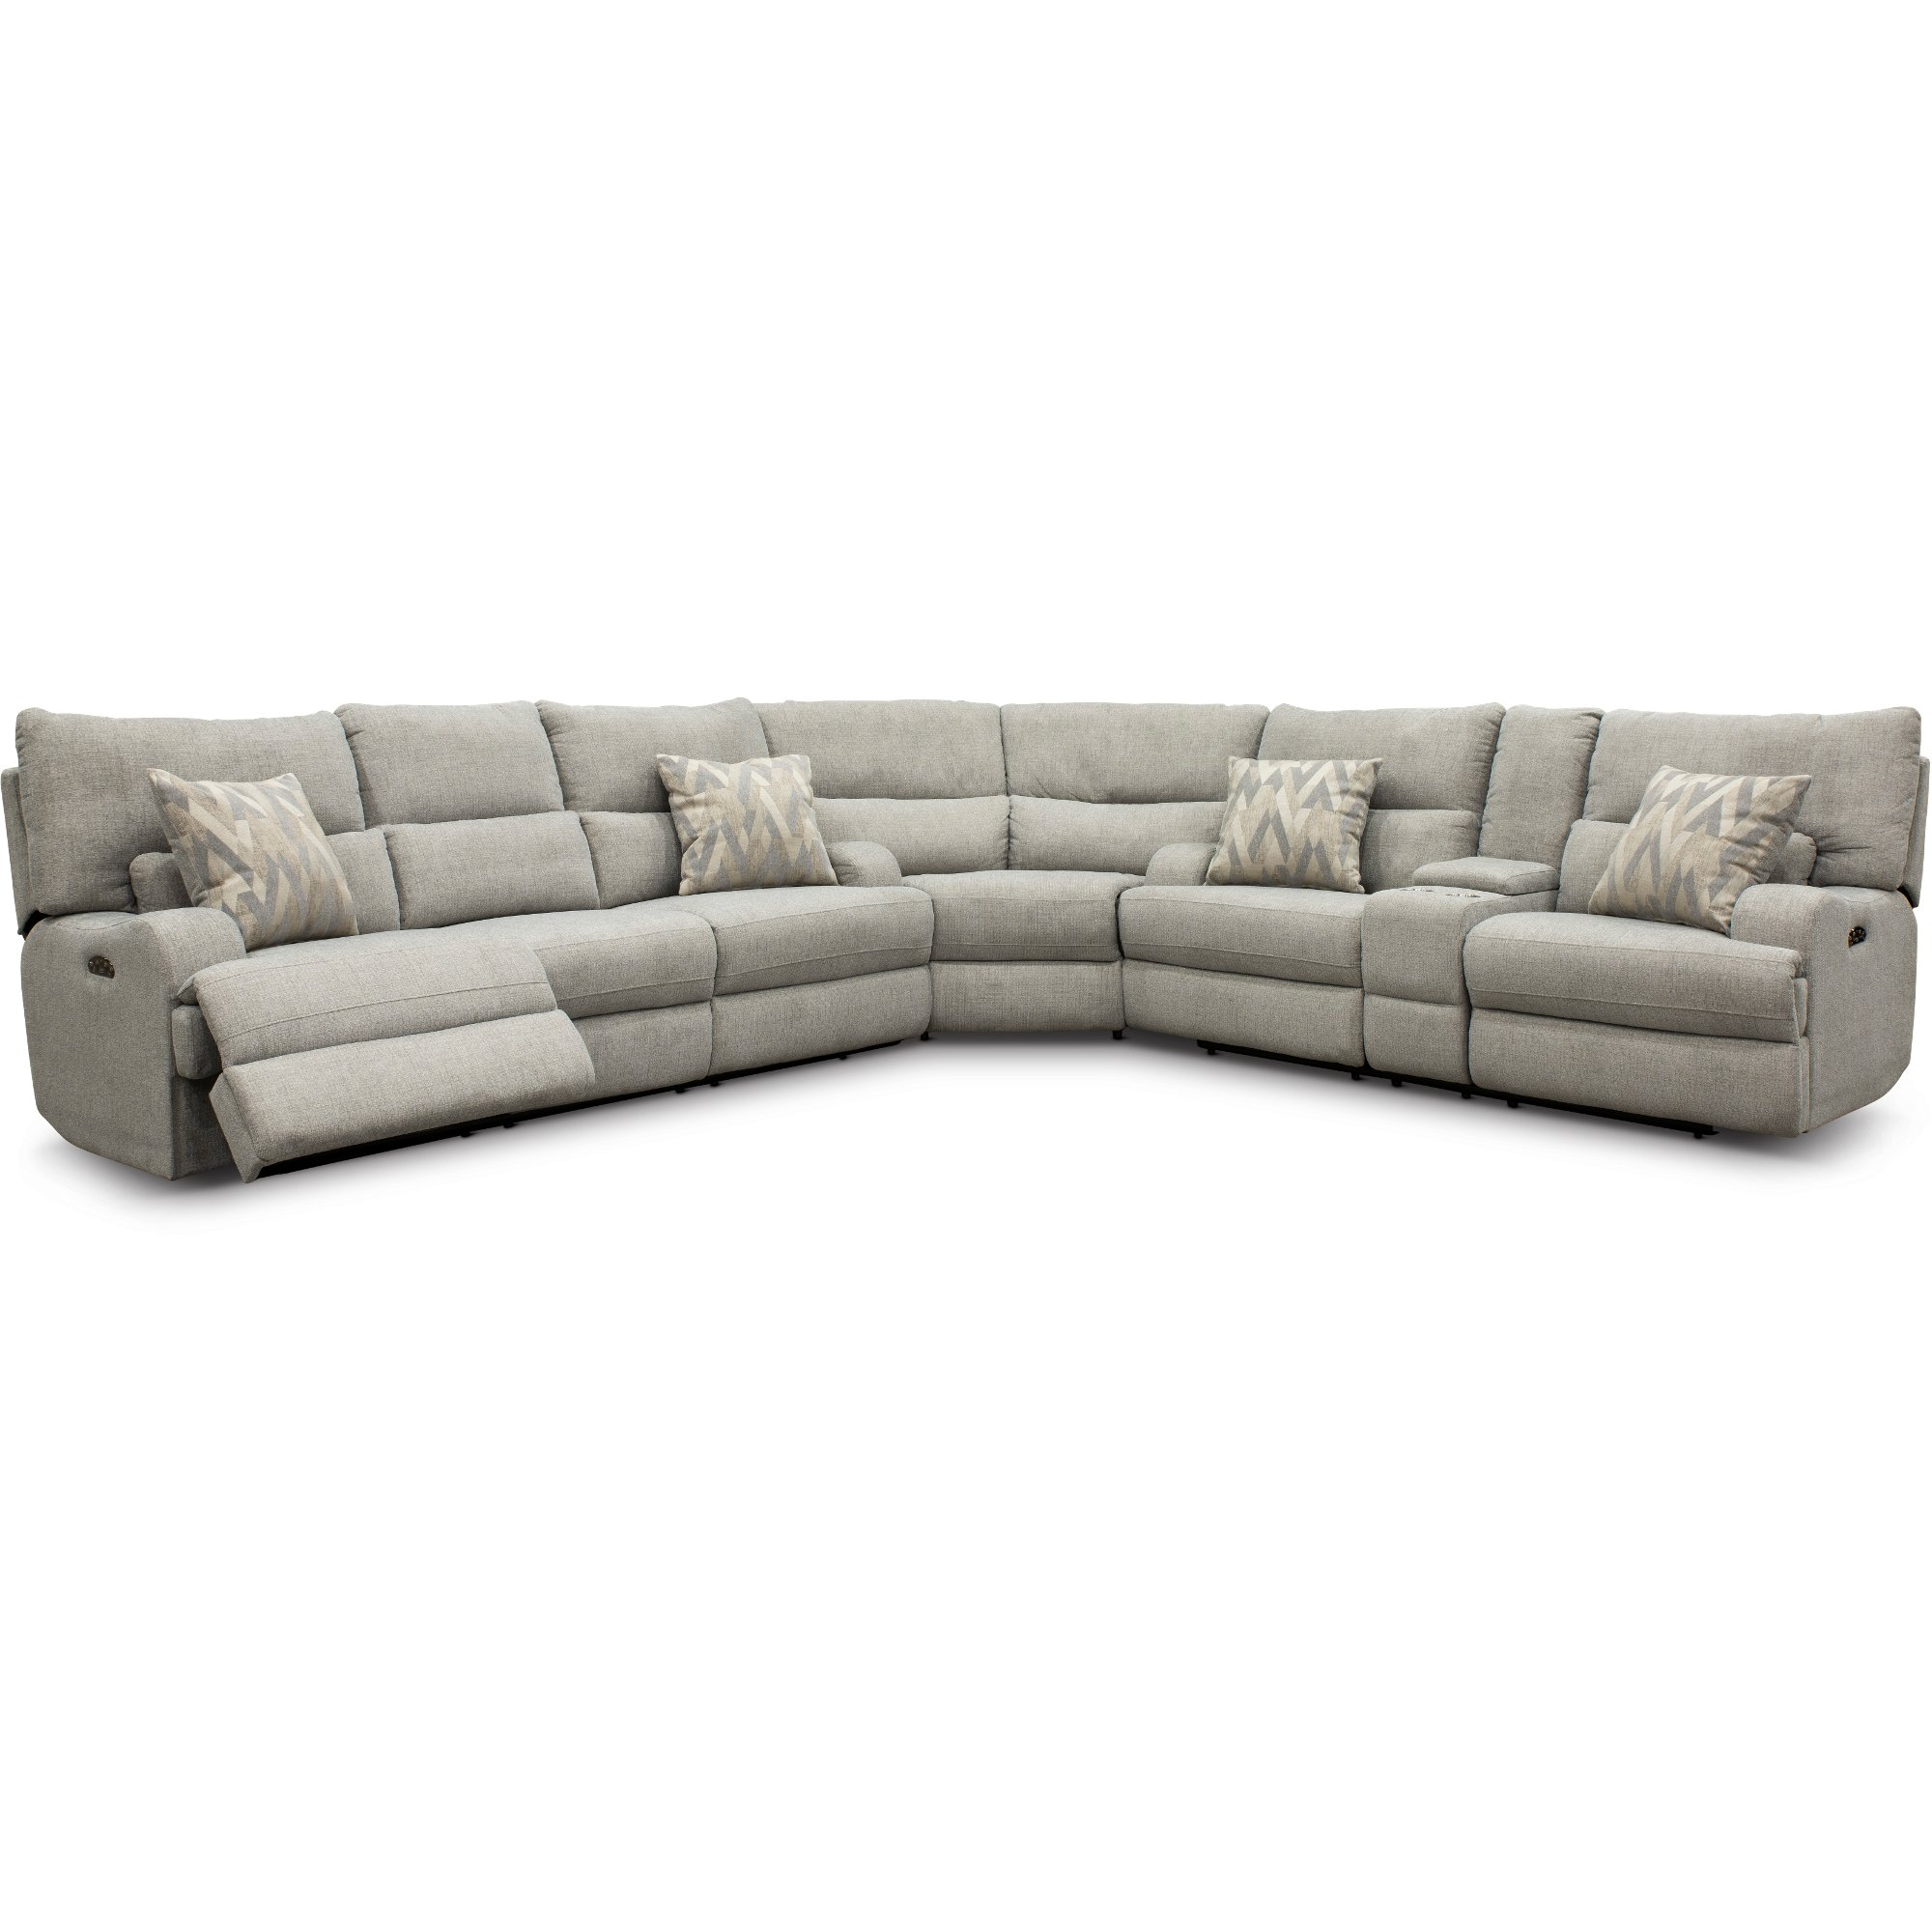 Archie Shark Gray Power Reclining Sectional Sofa Brindle